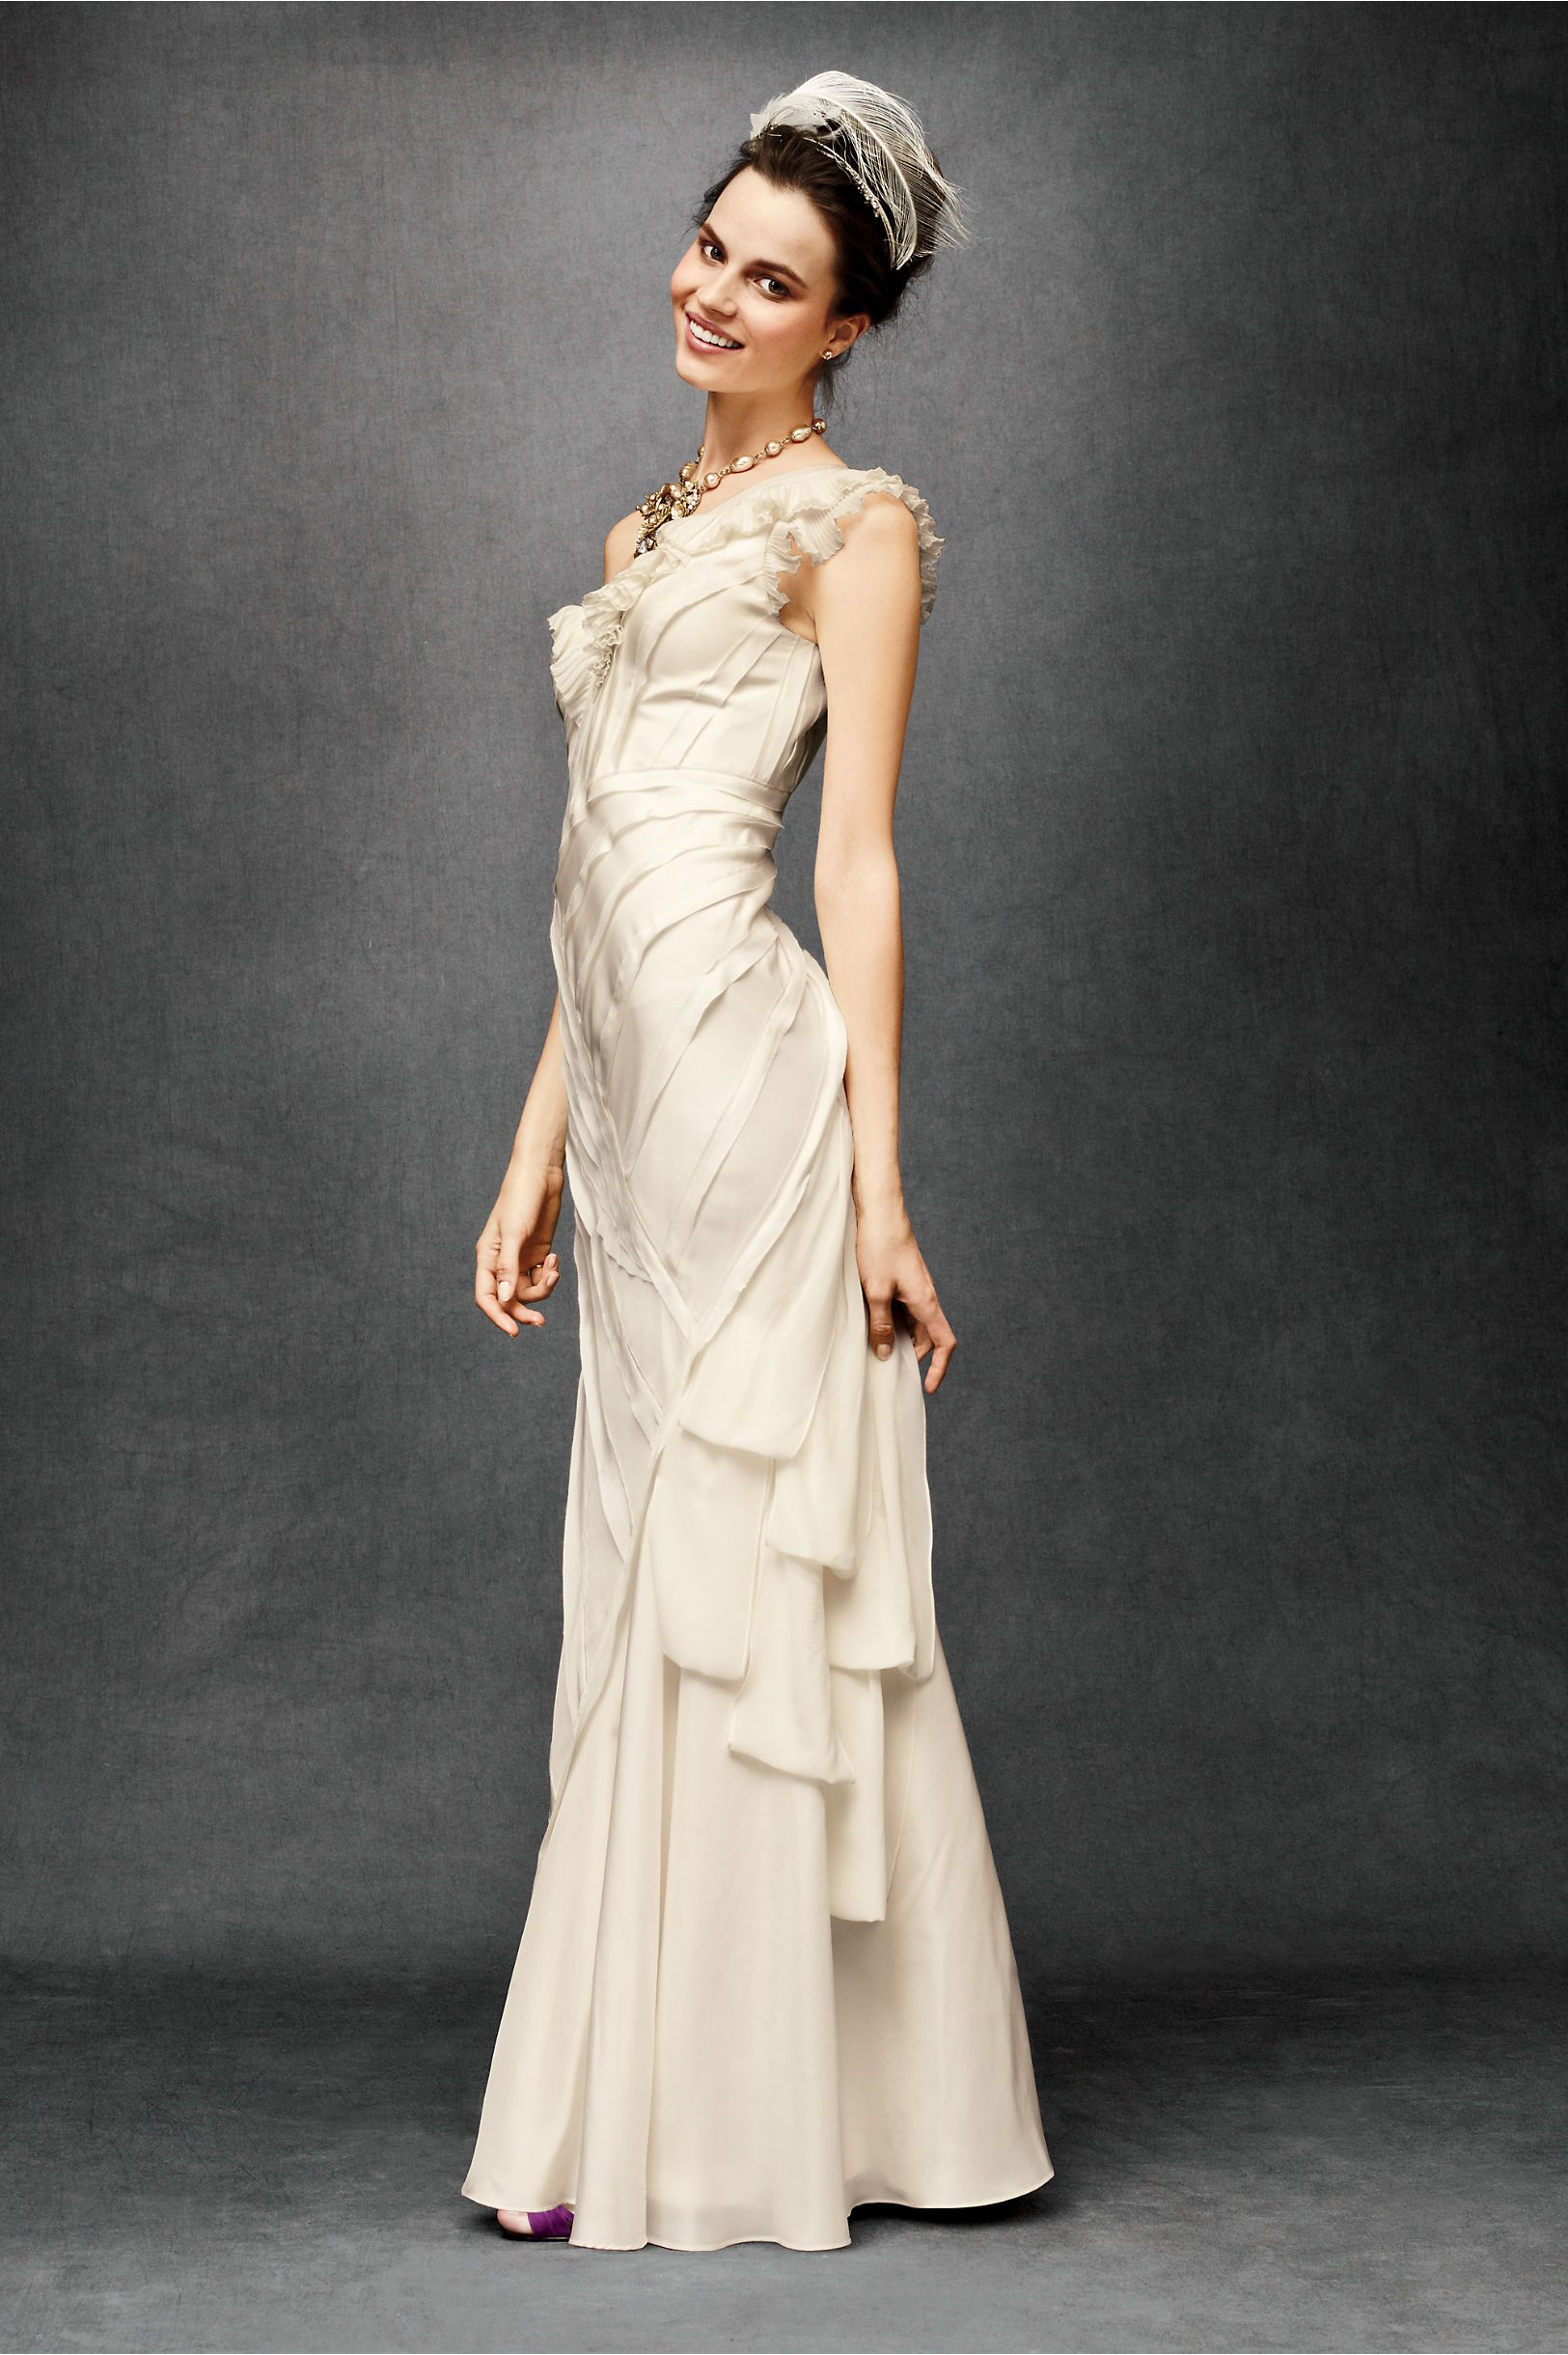 Ribboned silk gown in shop the bride wedding dresses at bhldn ribboned silk gown in shop the bride wedding dresses at bhldn ombrellifo Gallery